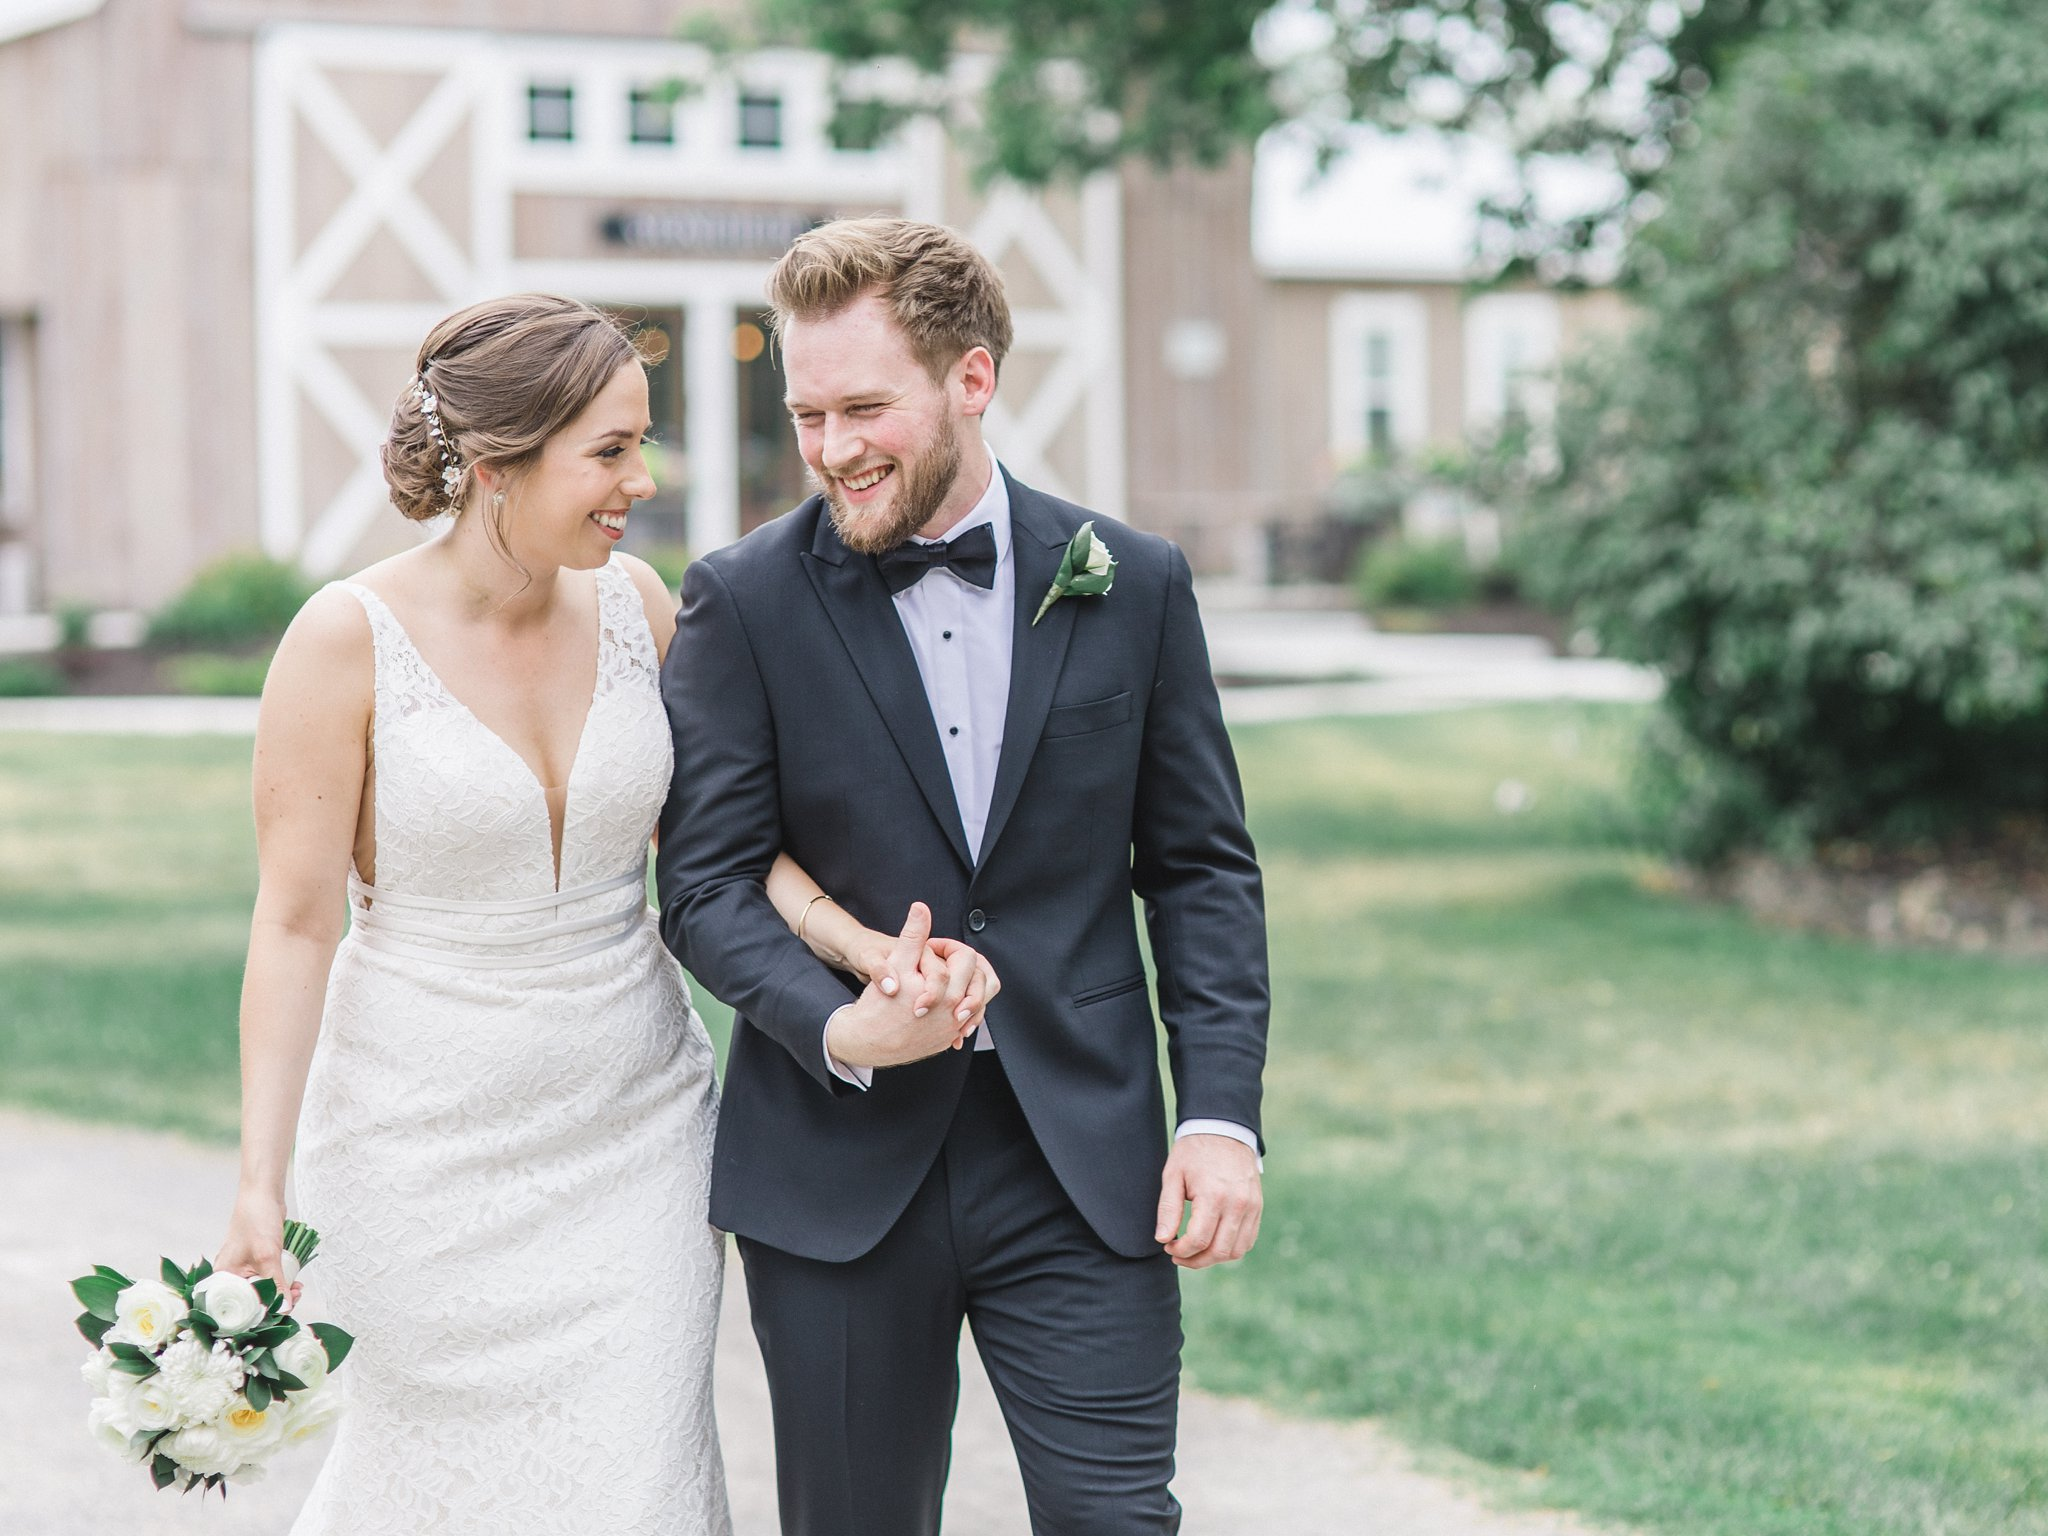 Classic wedding look in black tie and wedding dress married at Stonefields, Amy Pinder Photography